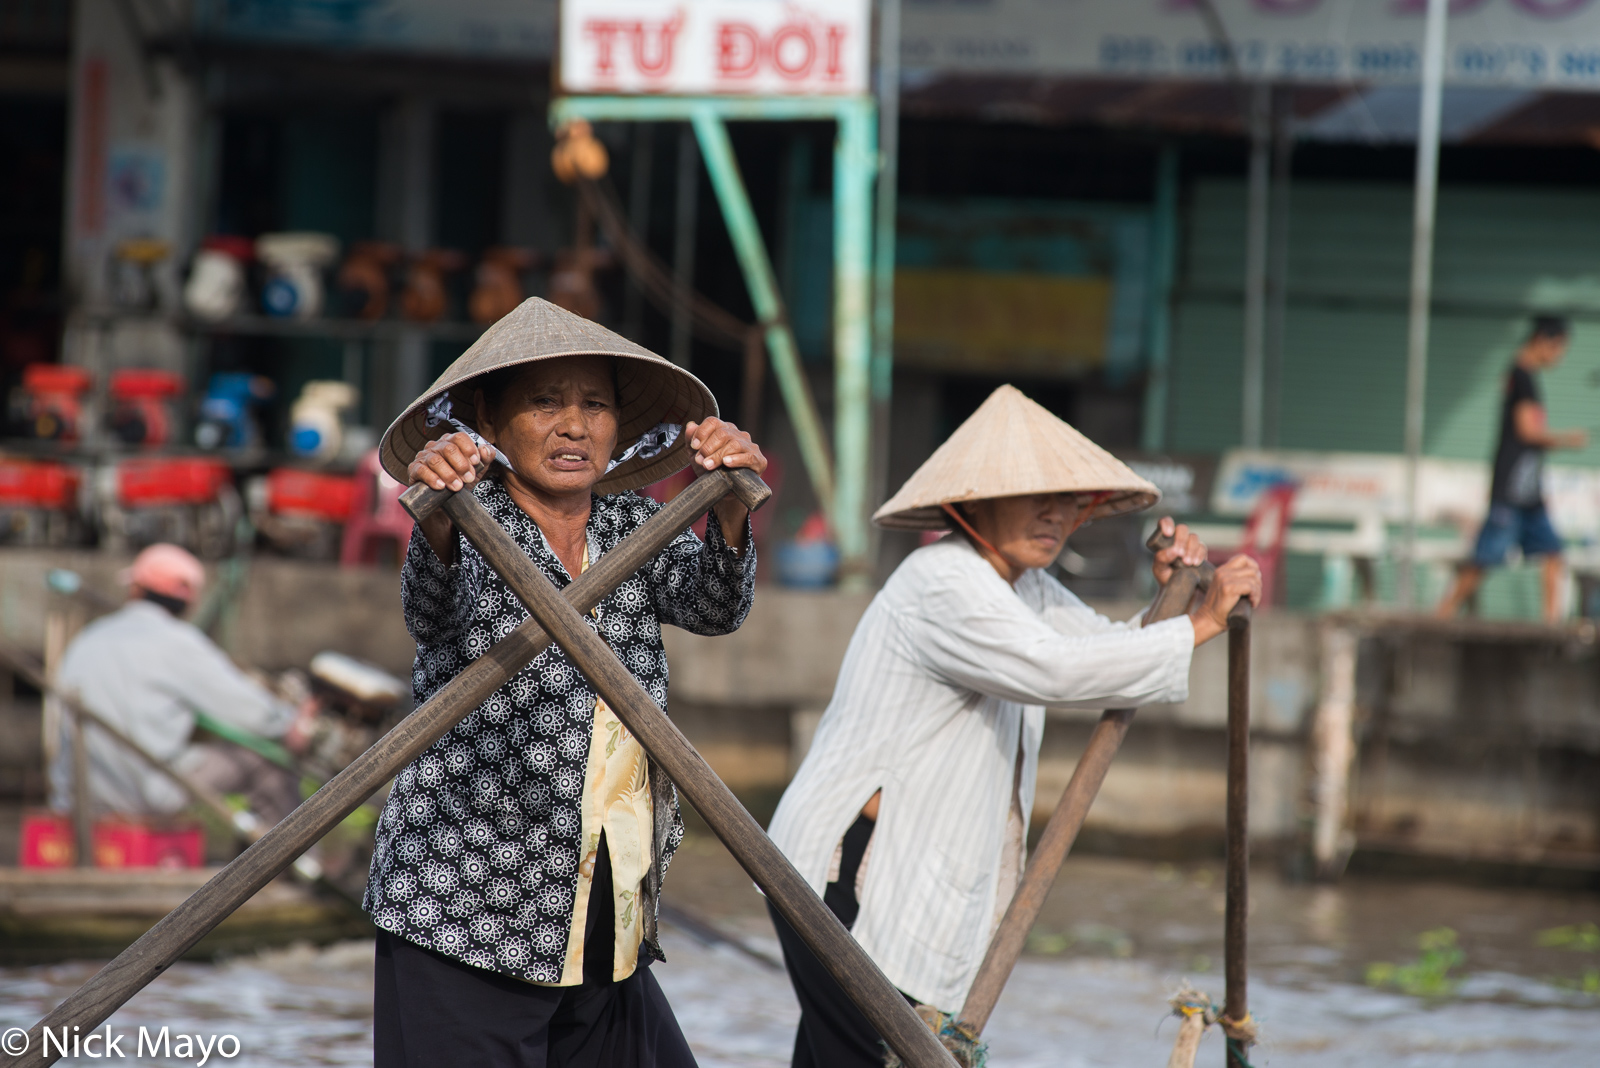 Hat, Soc Trang, Vietnam, photo